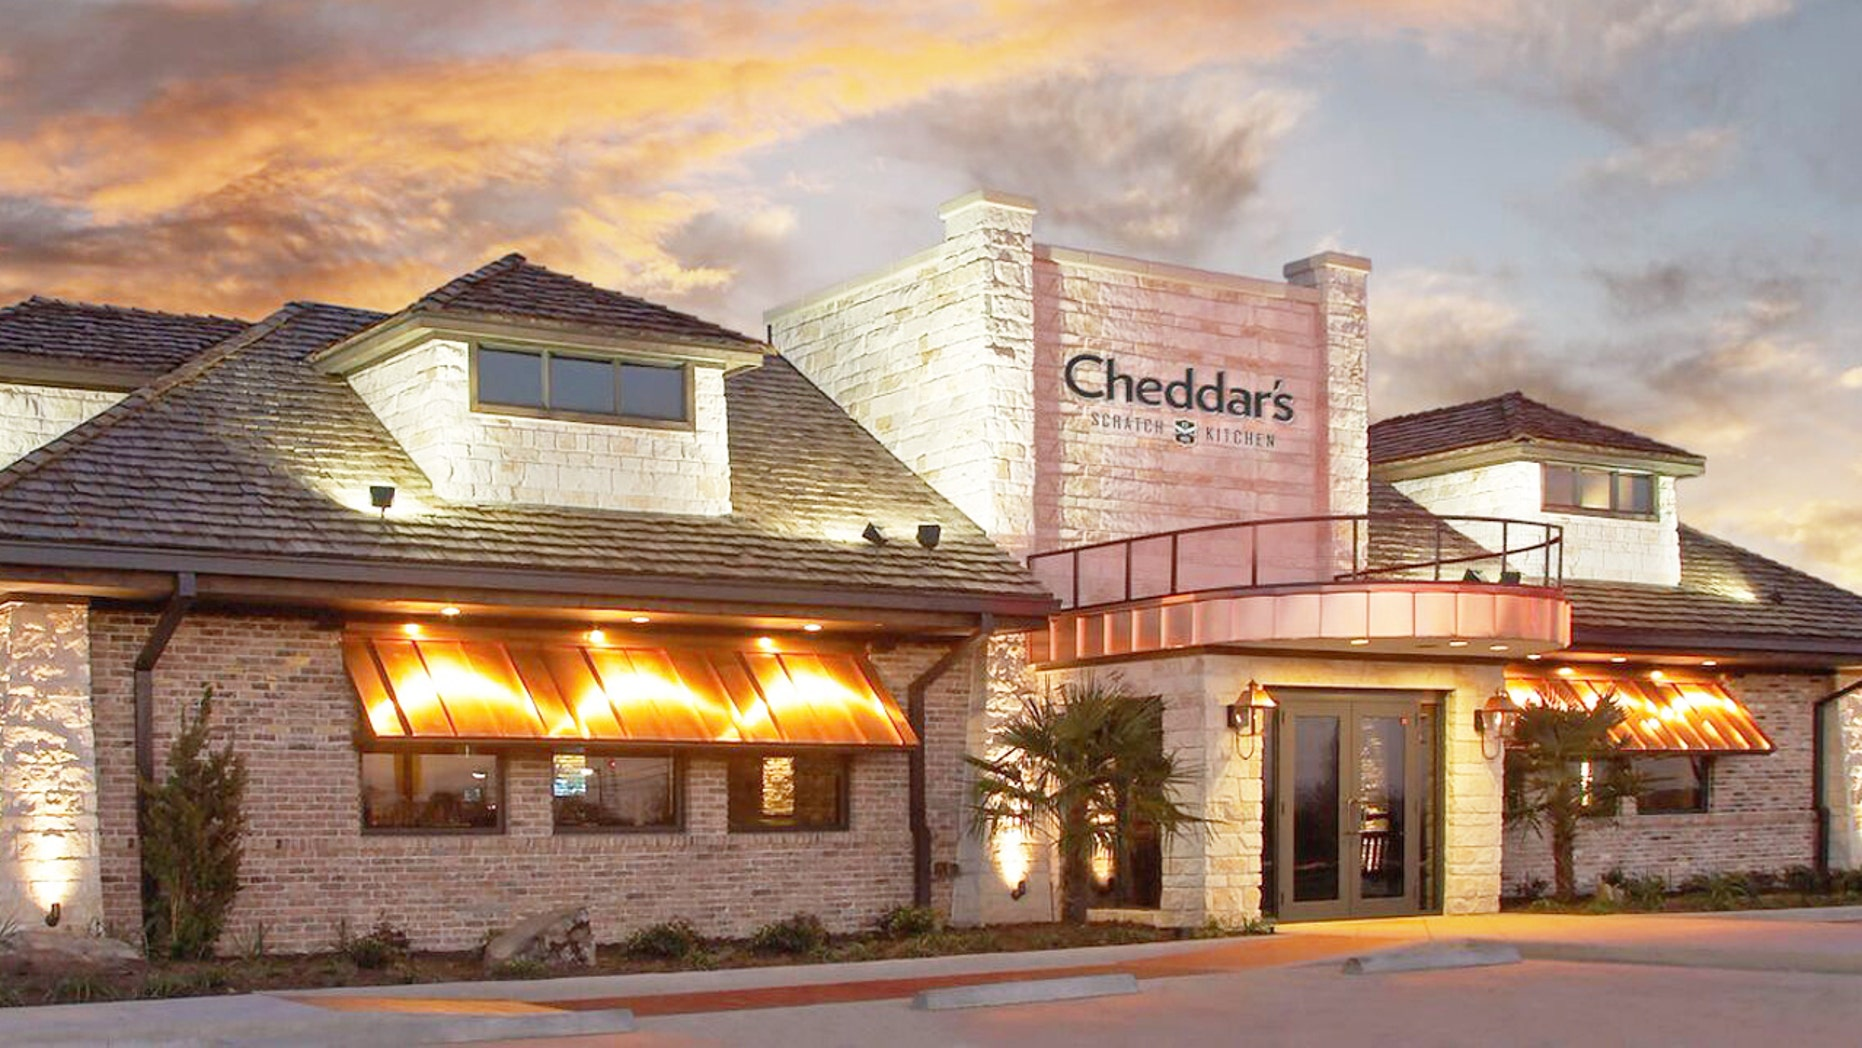 Cheddar's employees are wondering why they are suddenly out of a job.